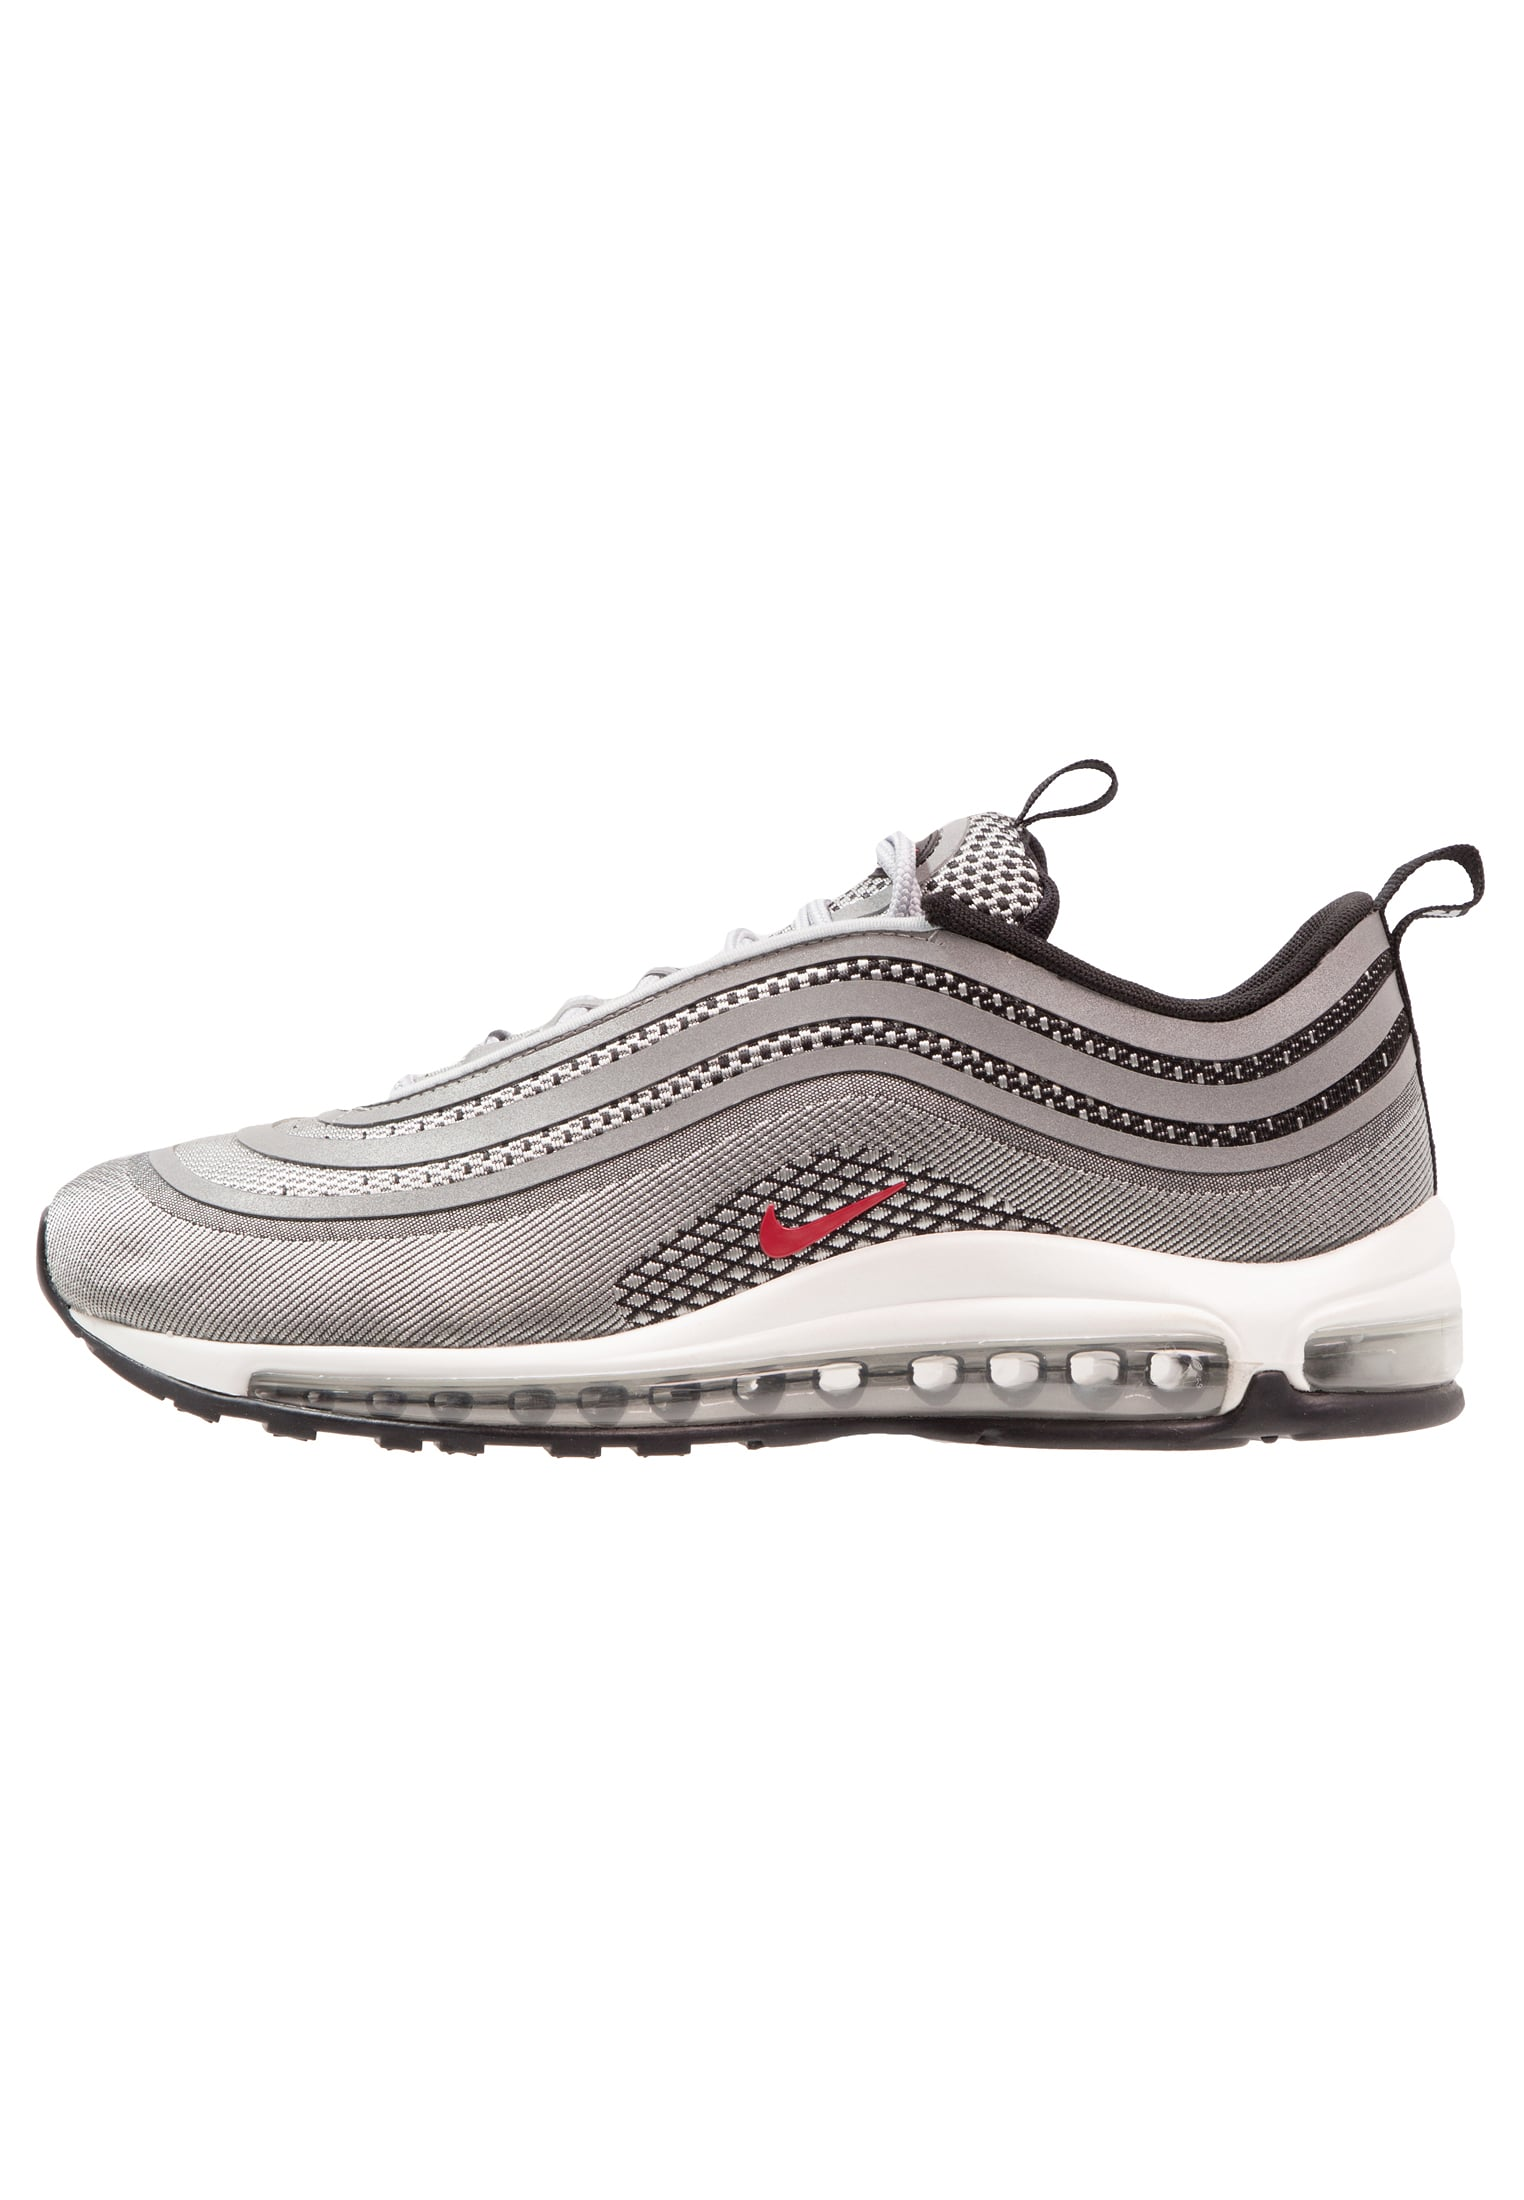 Nike Air Max 97 | La sélection de Zalando